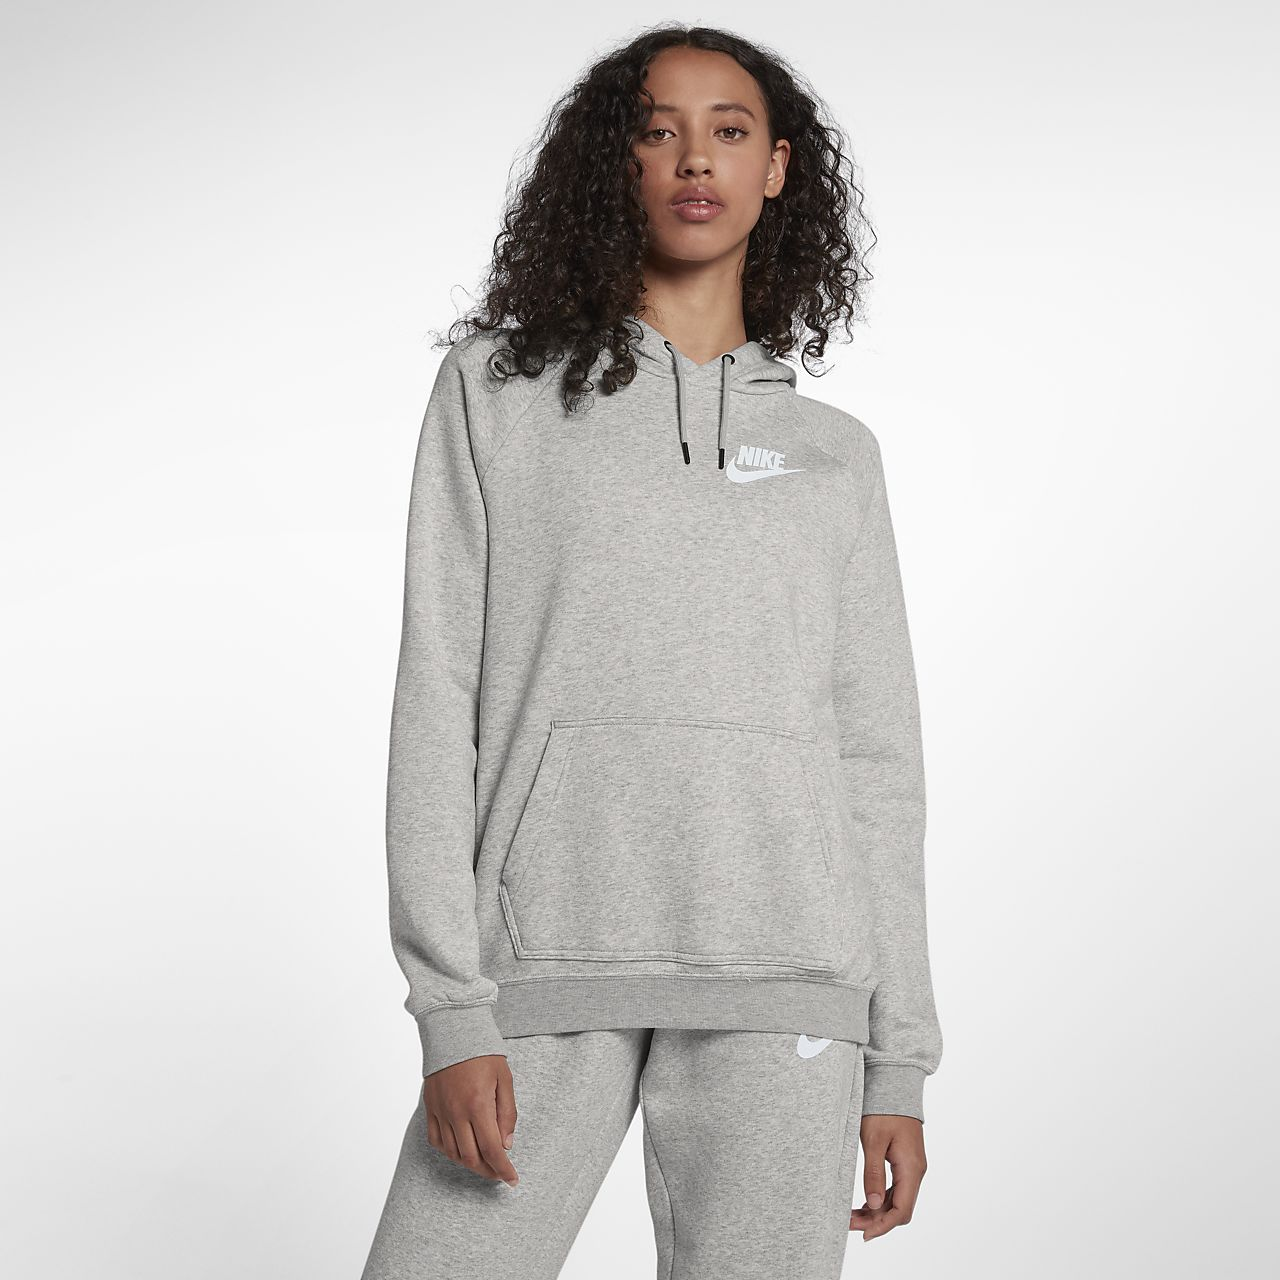 fd7fdf1c1c1a Low Resolution Nike Sportswear Rally Women s Hoodie Nike Sportswear Rally  Women s Hoodie